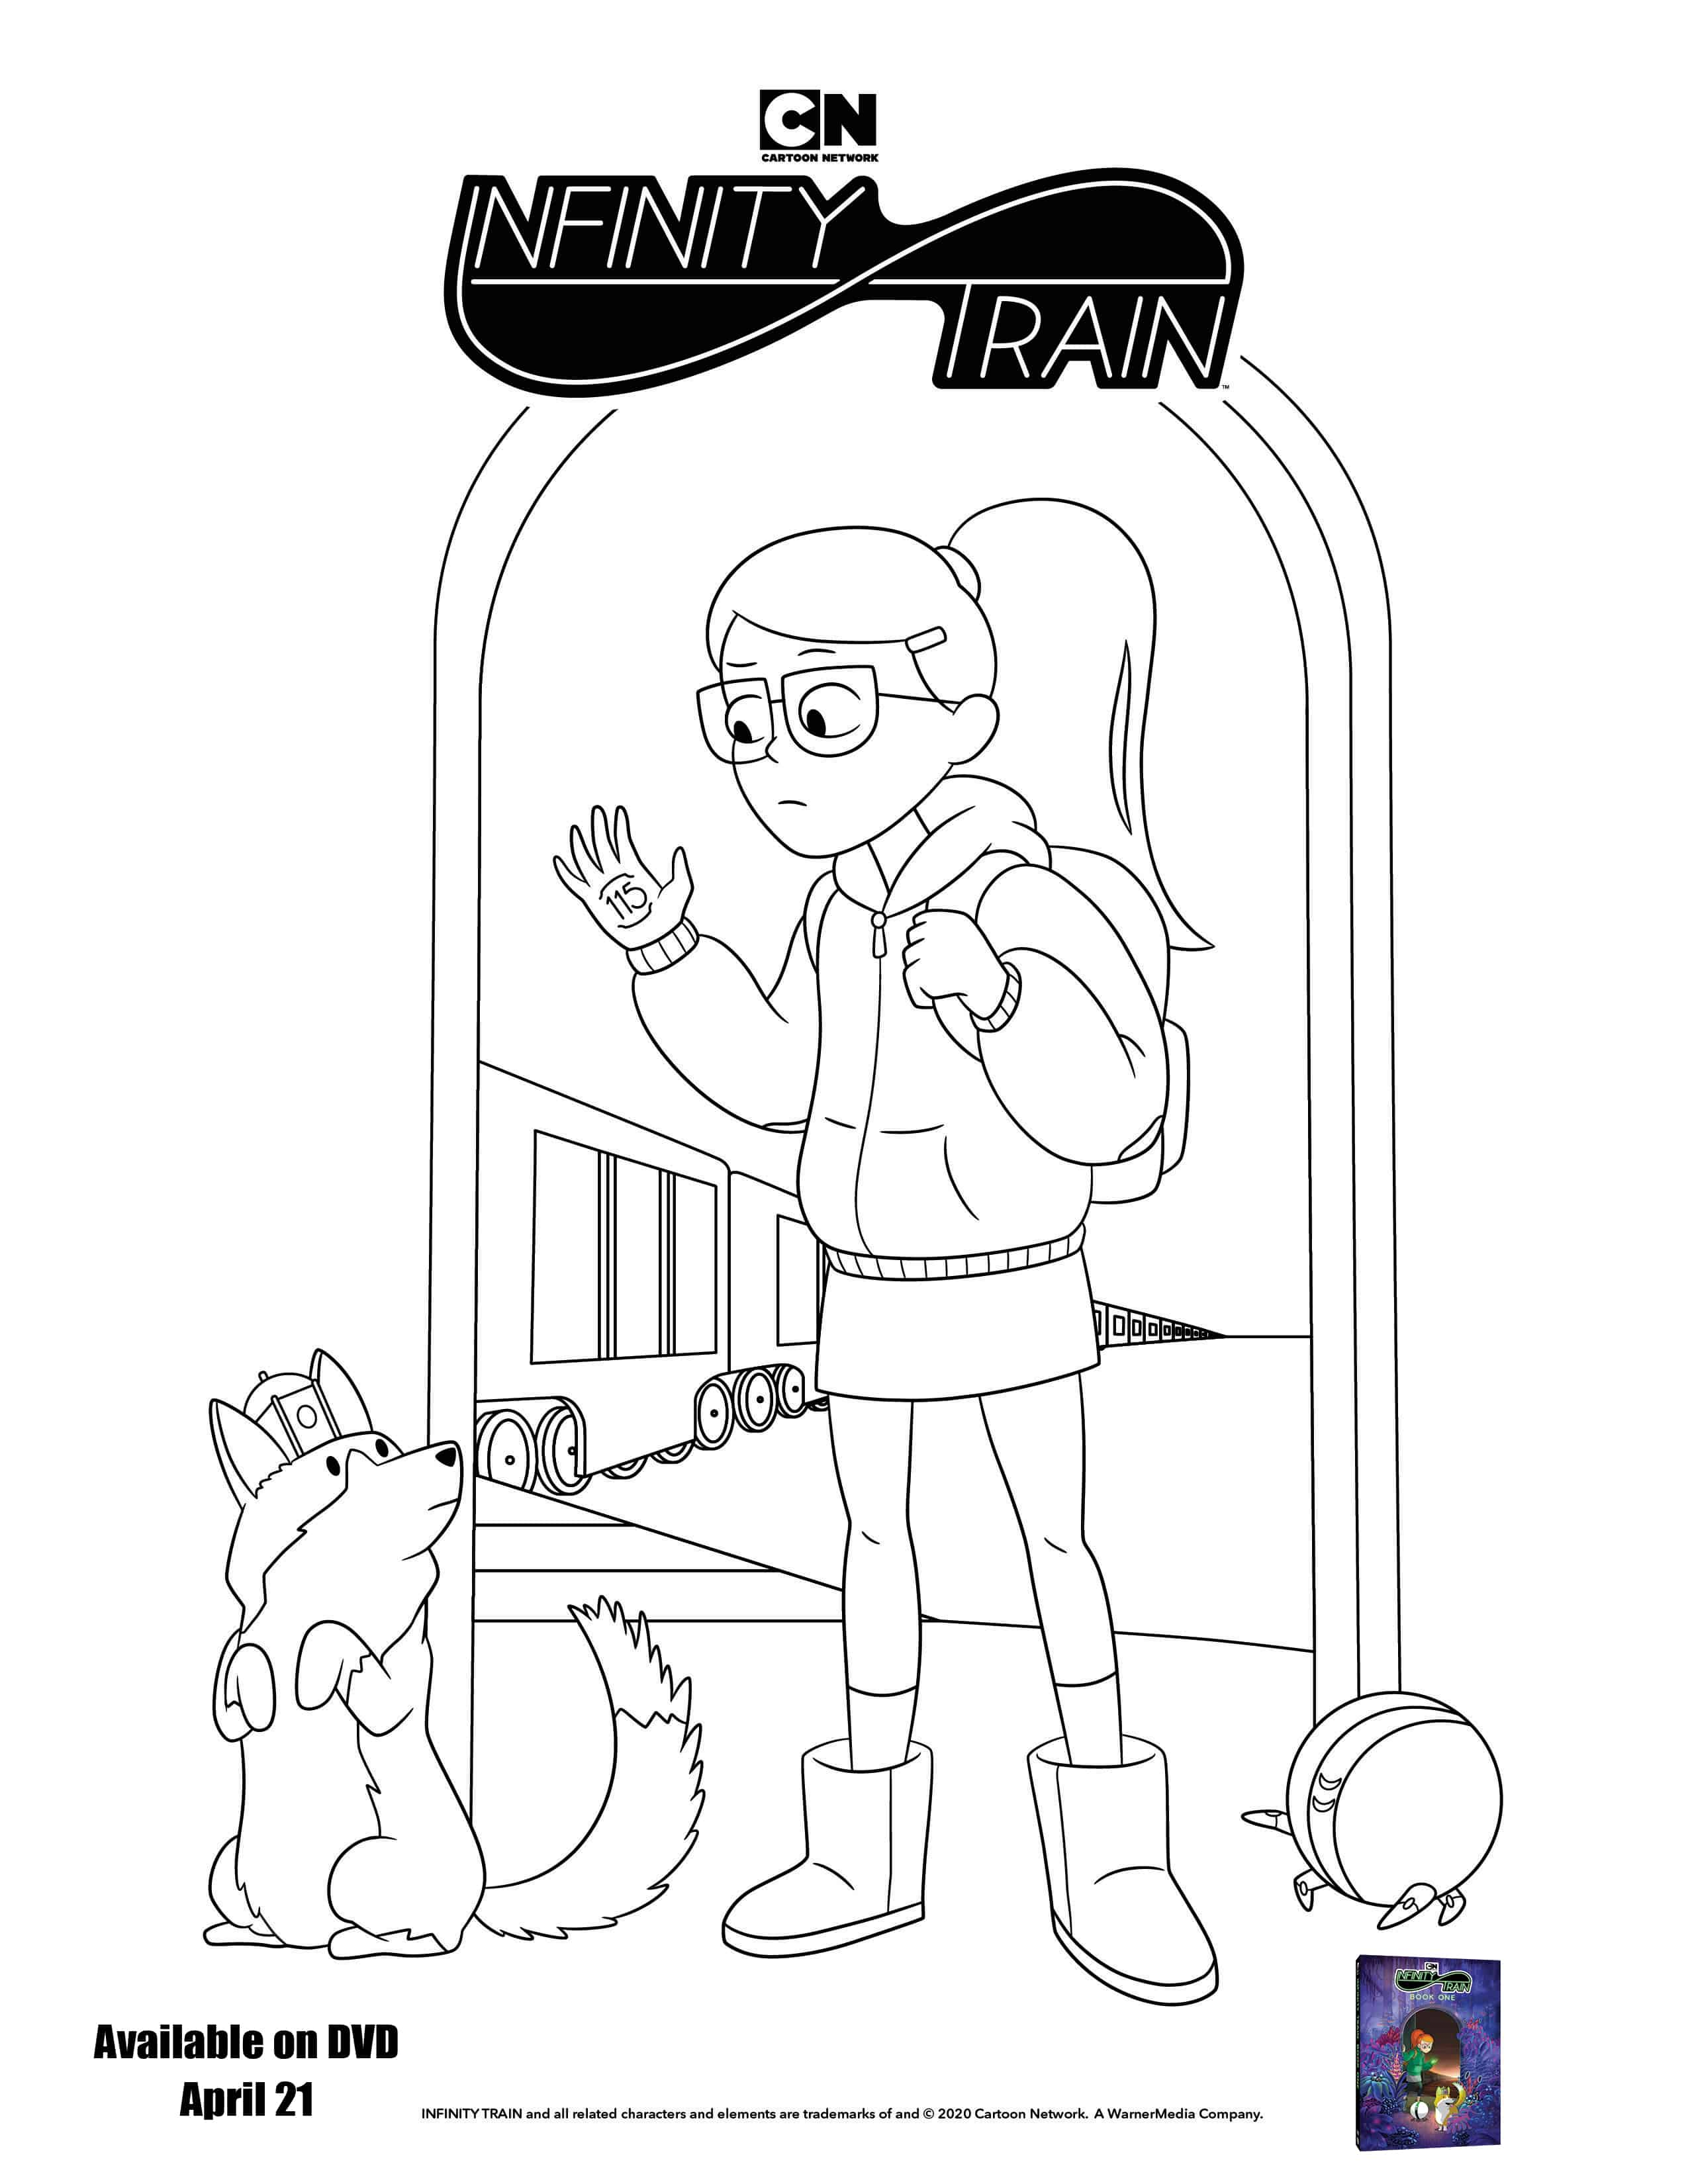 Infinity Train Book One Coloring Sheet from Warner Brothers Productions